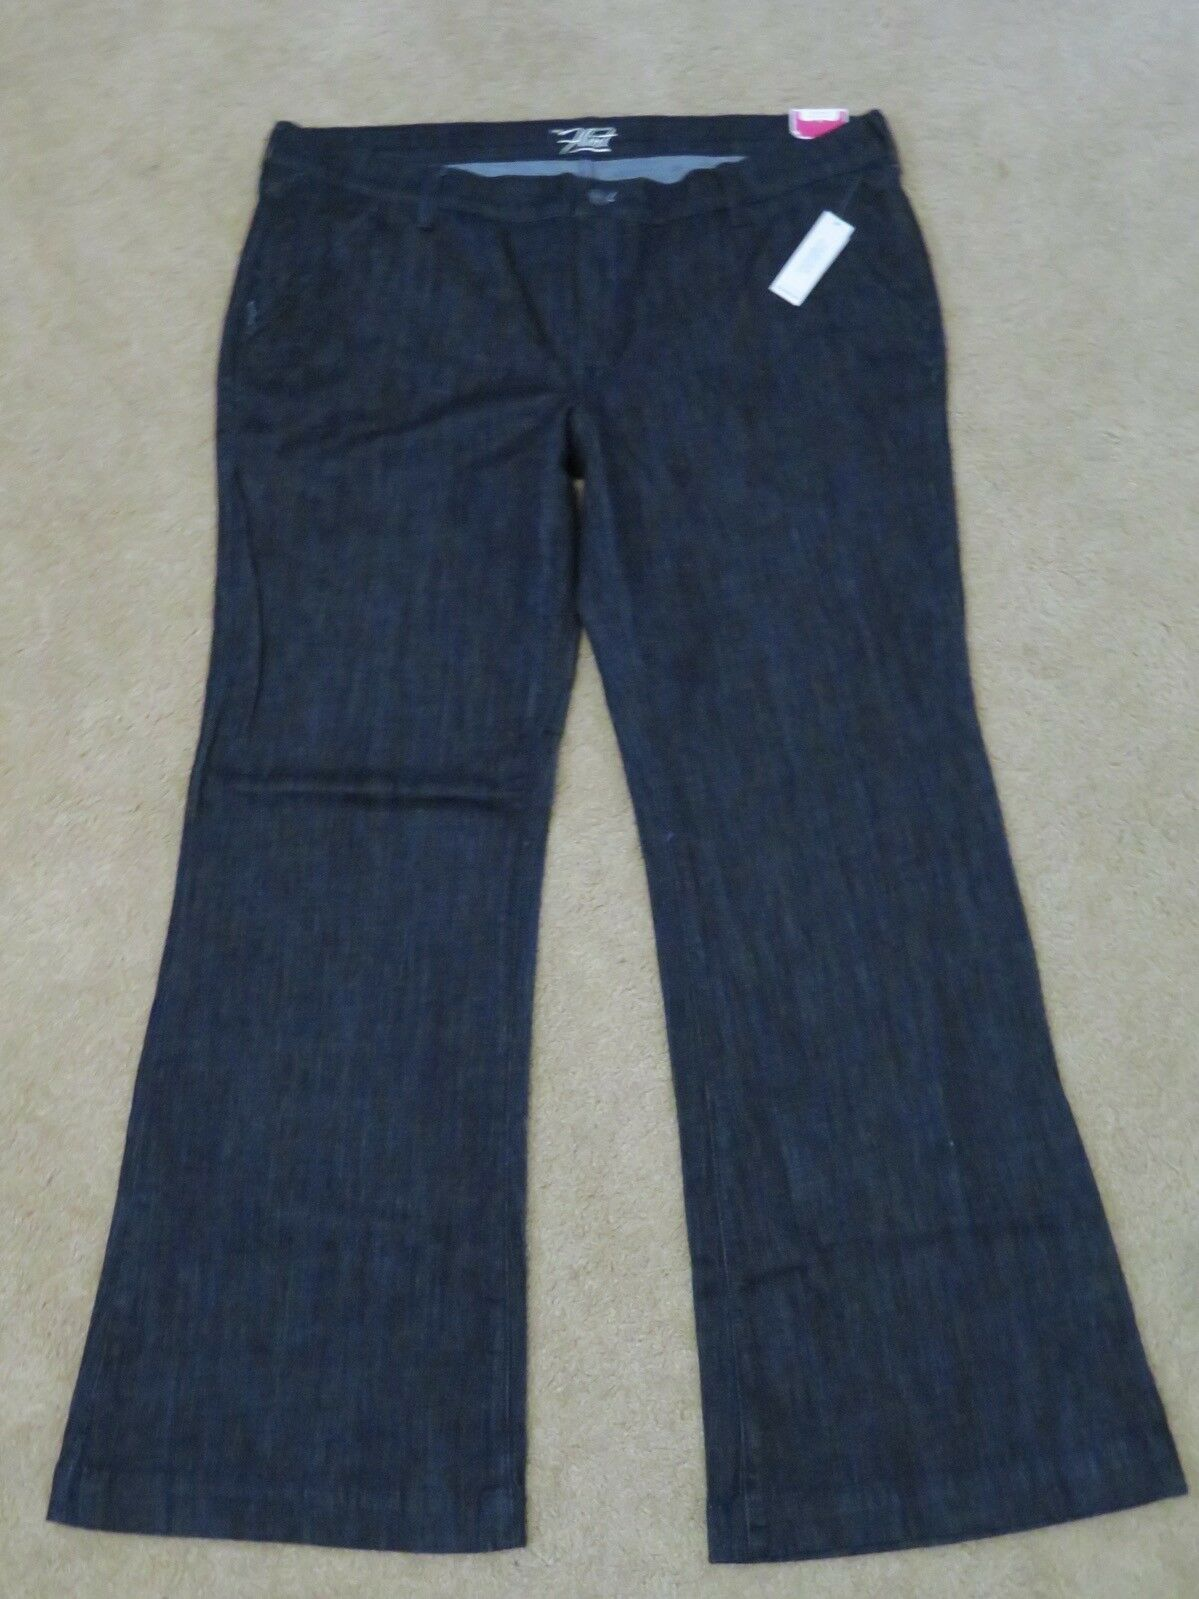 New with Tags Women's Old Navy The Flirt Trouser Mid Rise bluee Jeans Pants Sz 16